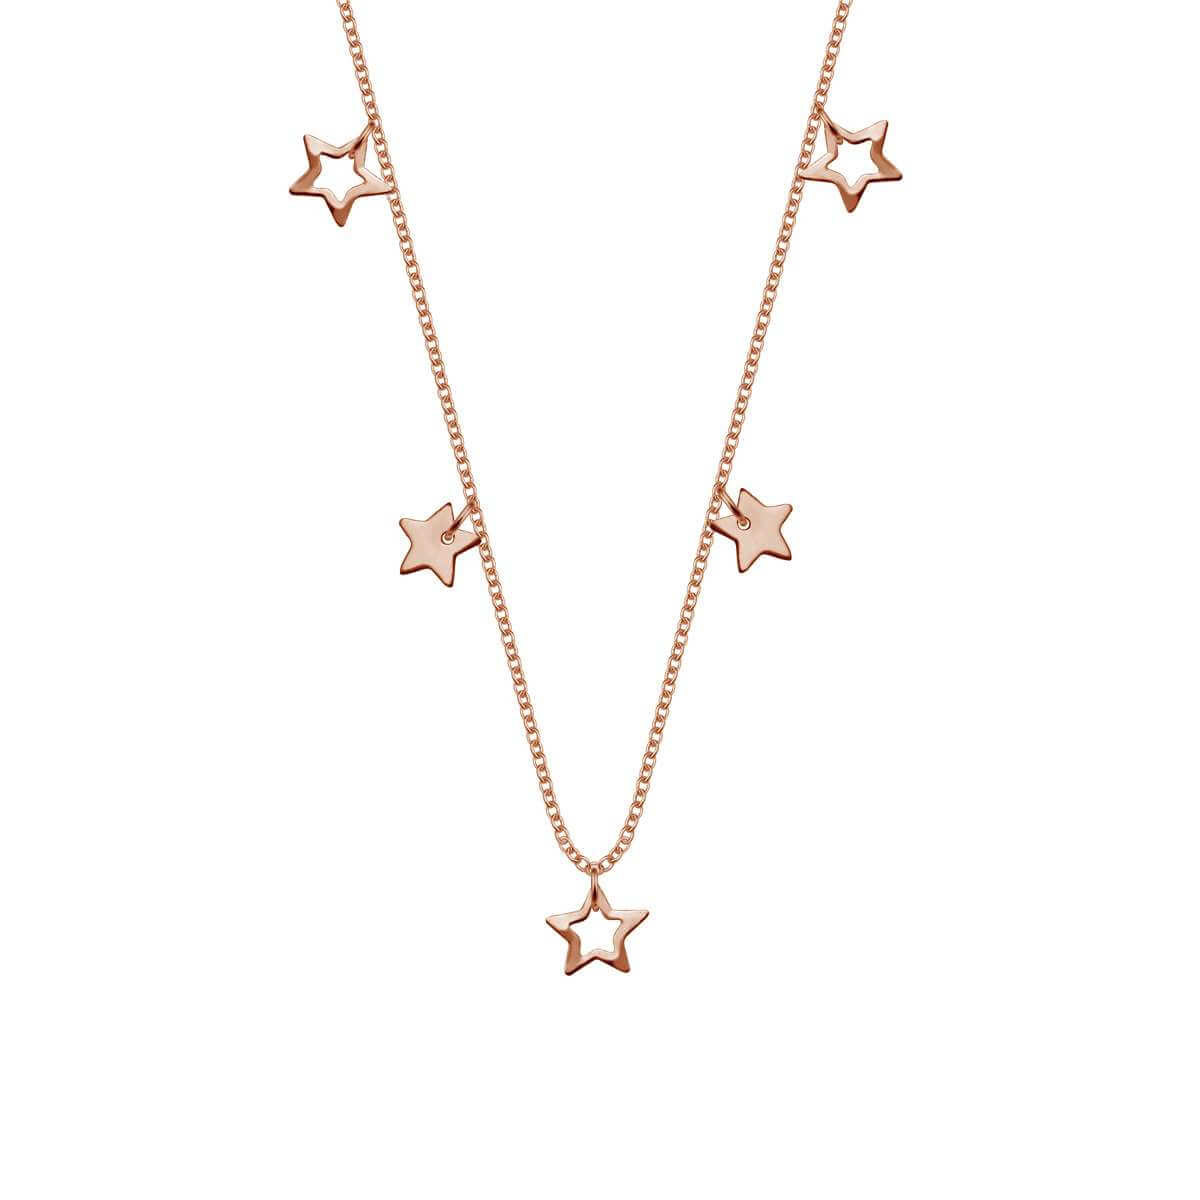 Rose Gold Plated Sterling Silver Stars 18 Inch Necklace